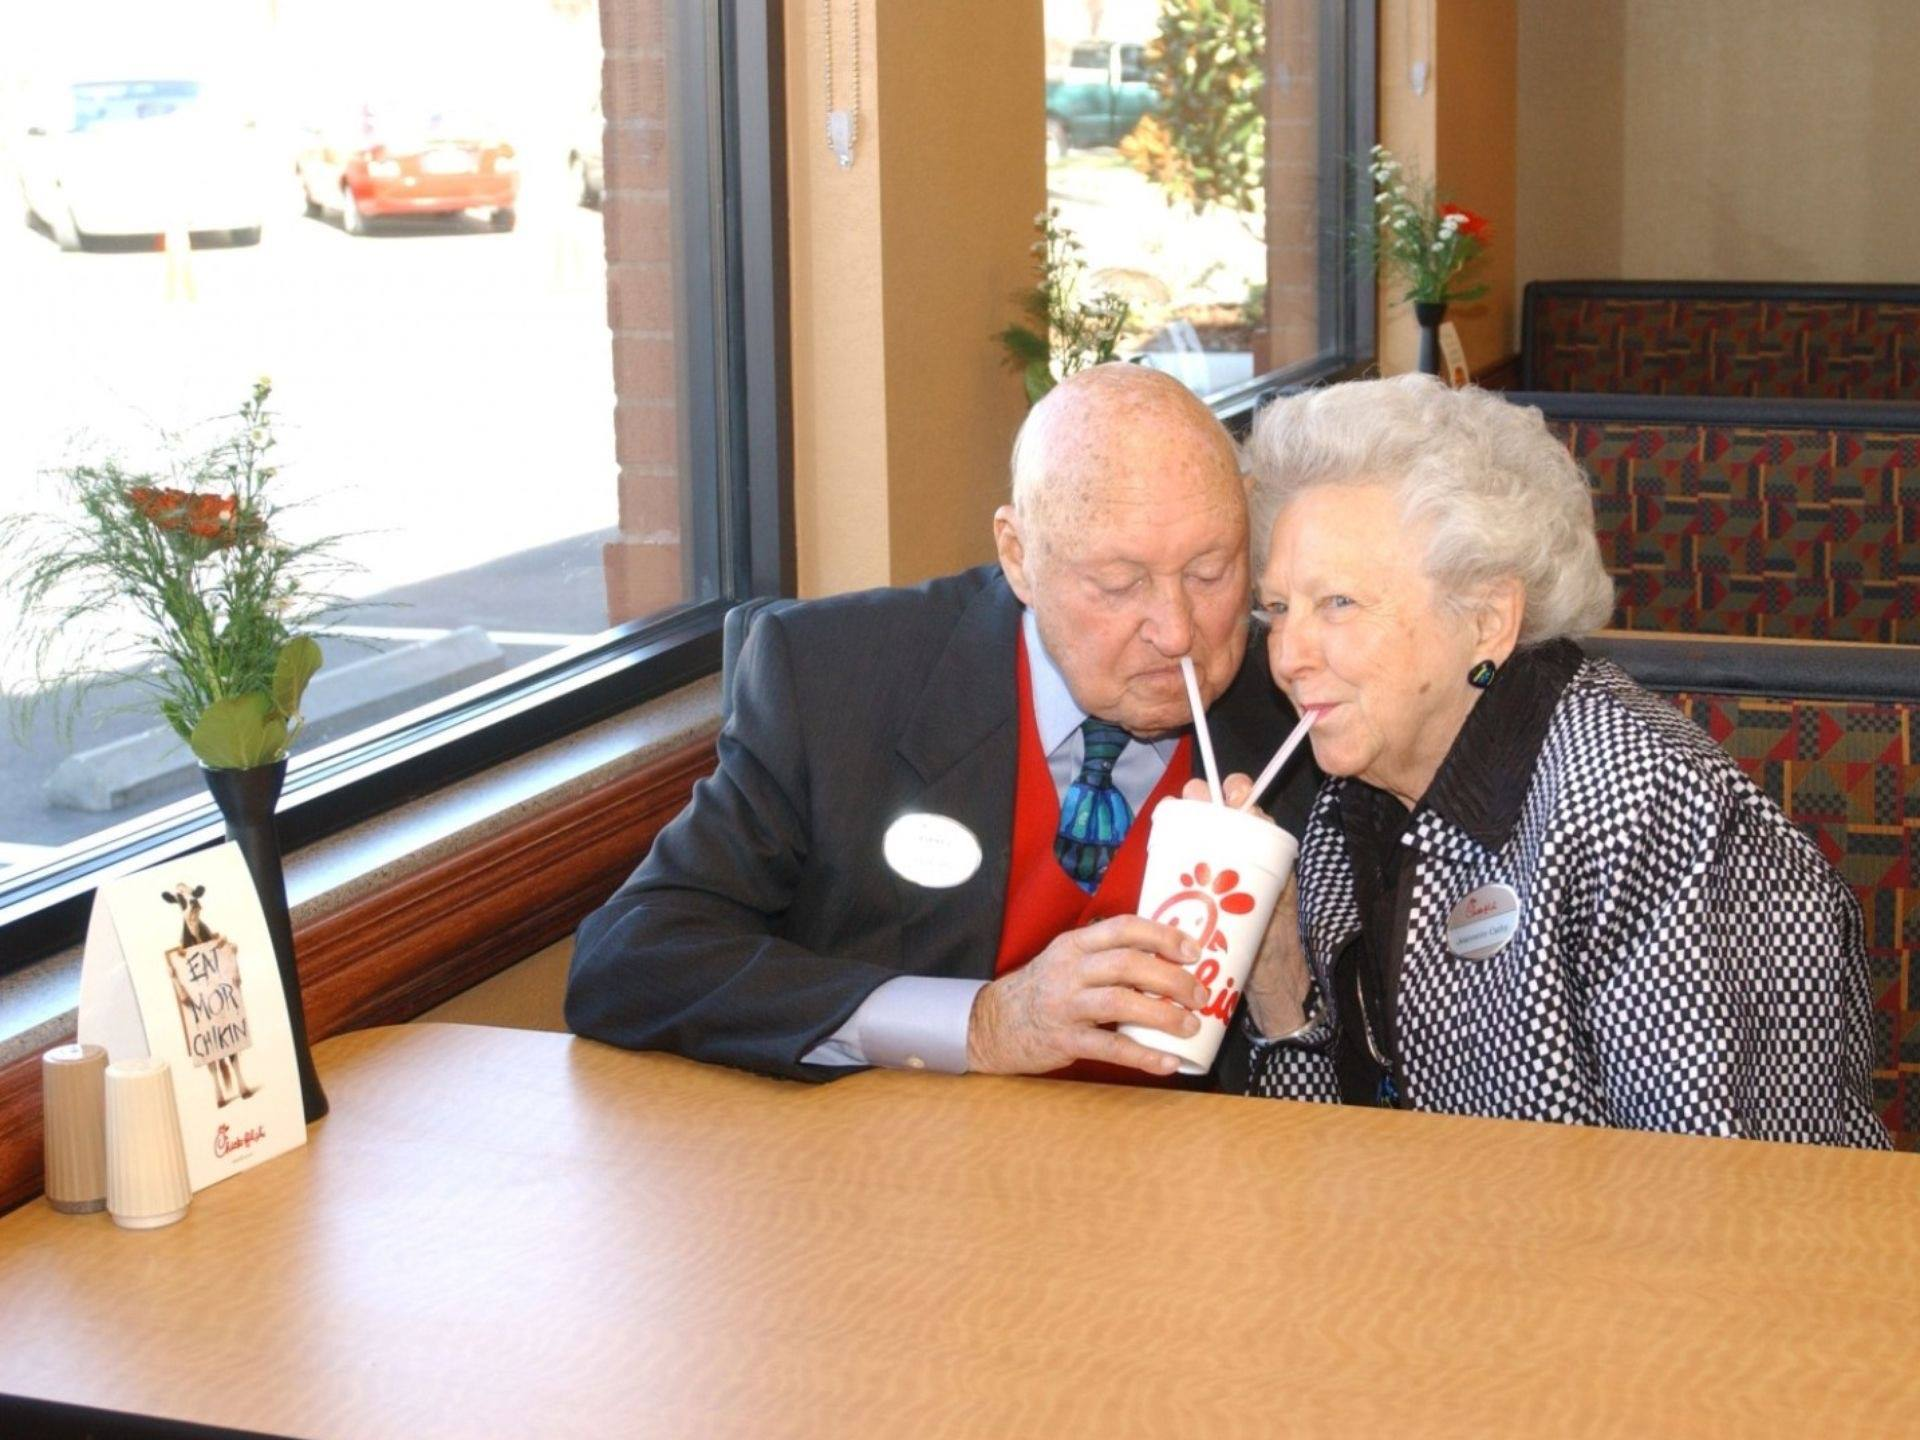 chick-fil-a founders the cathys